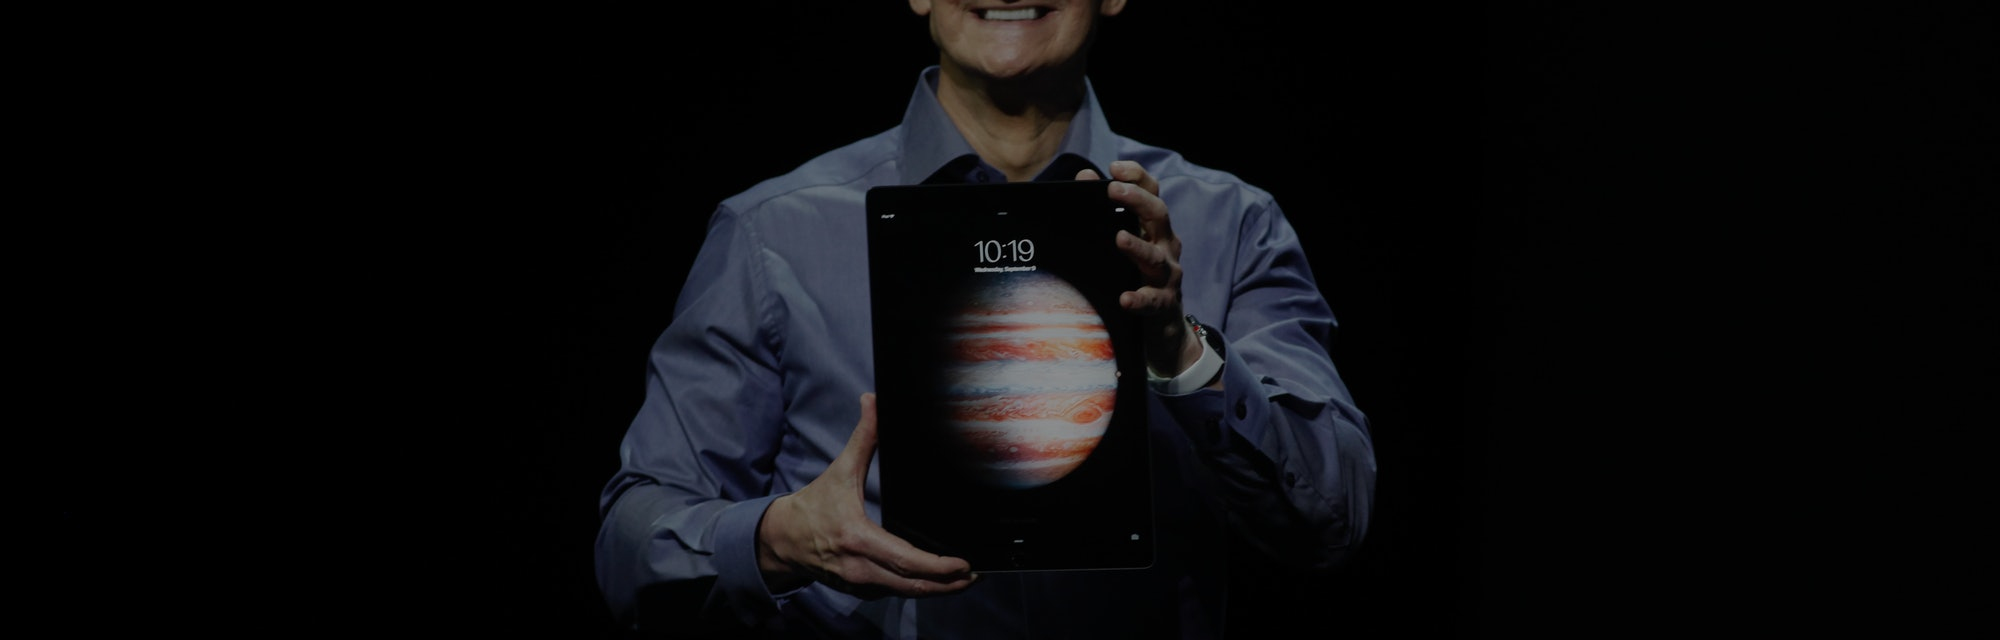 Apple's Tim Cook introduces the new IPad Pro during s media event at the Bill Graham Civic Auditorium Wednesday morning, Sept. 9, 2015, in San Francisco, Calif. (Karl Mondon/Bay Area News Group) (Photo by MediaNews Group/Bay Area News via Getty Images)